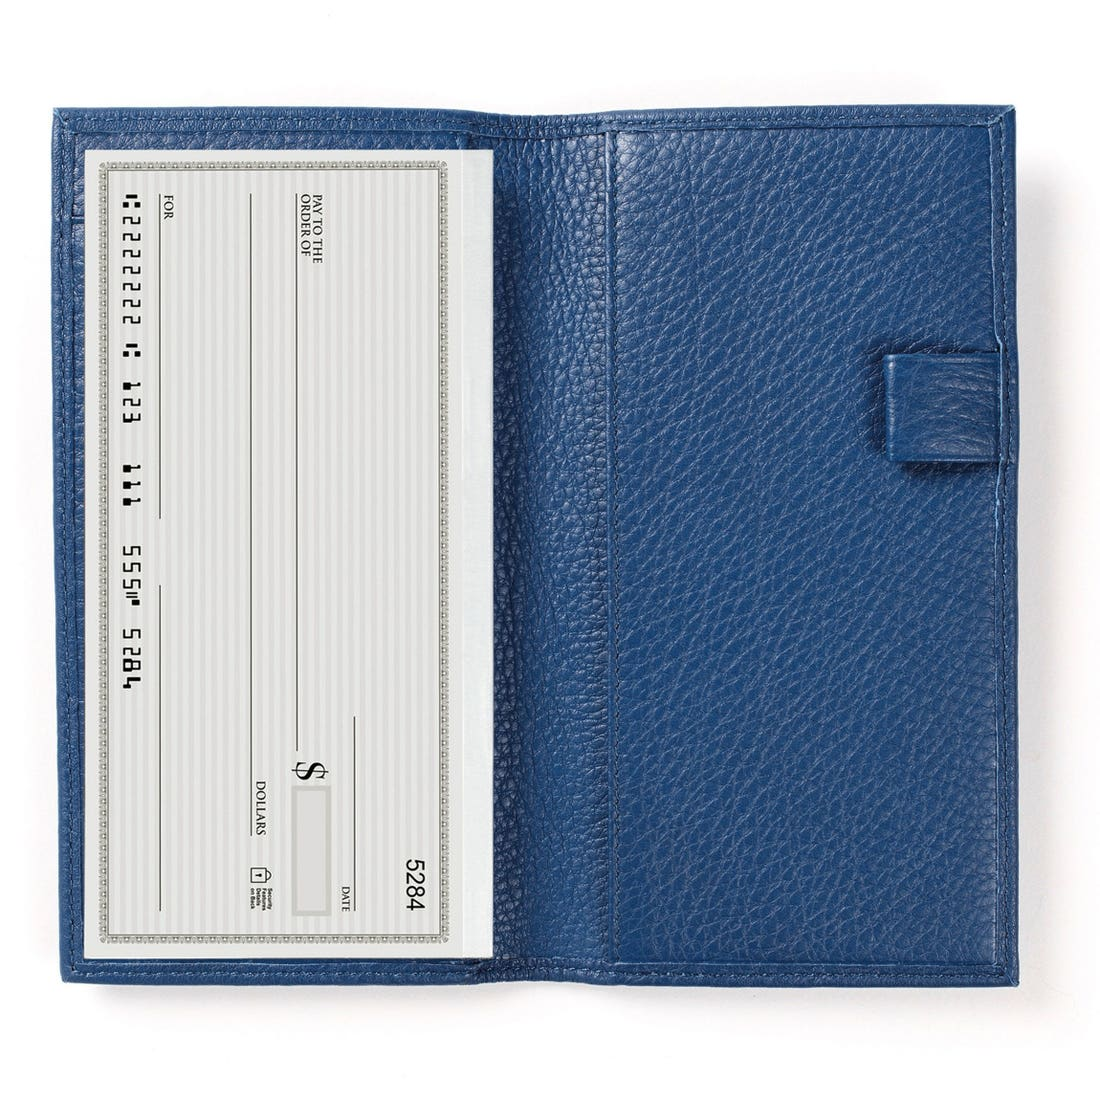 Deluxe Checkbook Cover with Divider